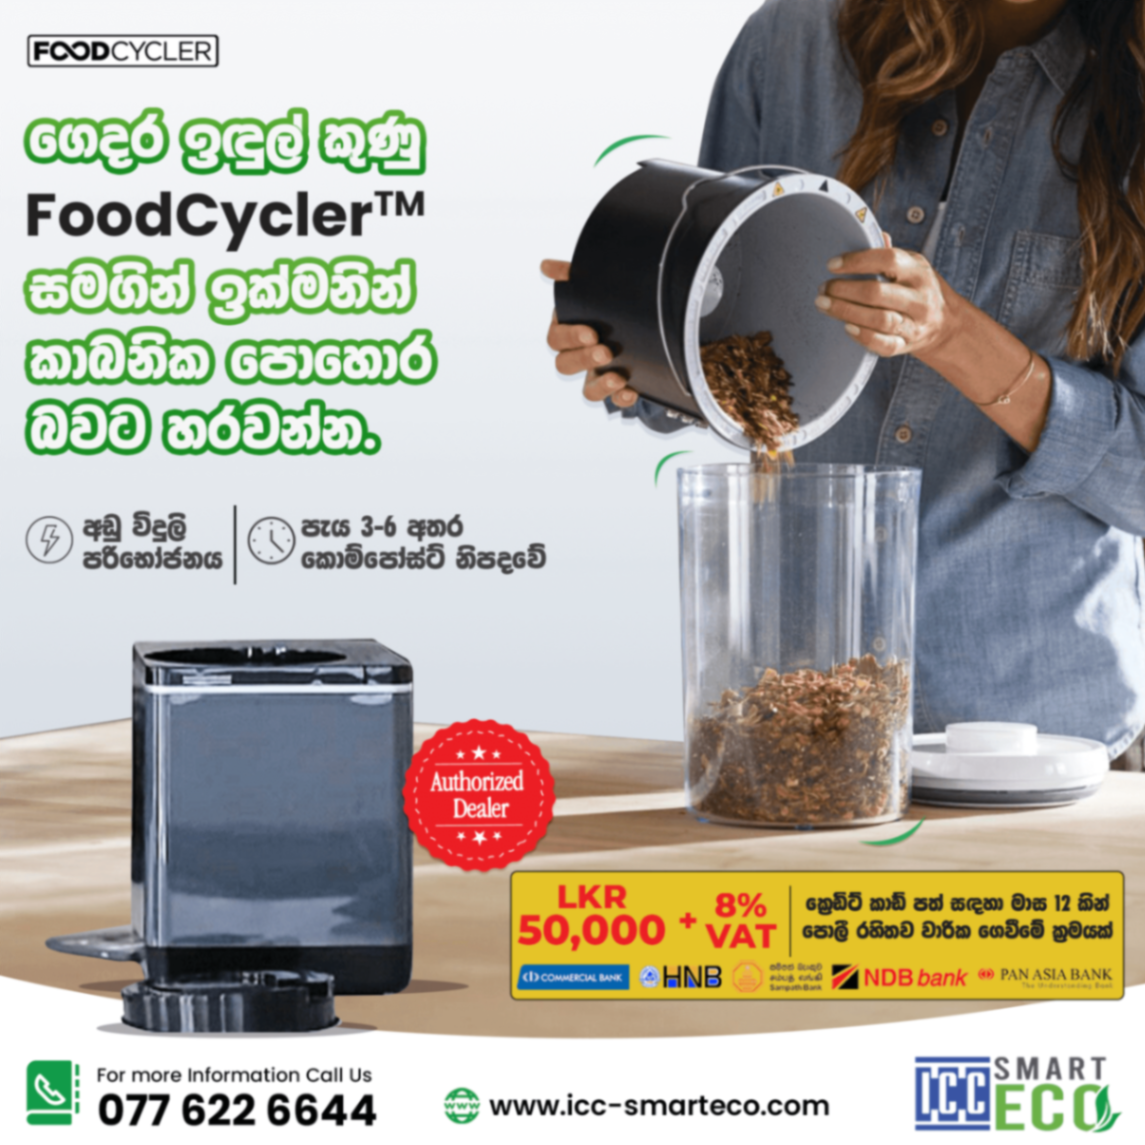 The FoodCycler™ - From organic food waste to Organic fertilizer with Your indoor composting machine